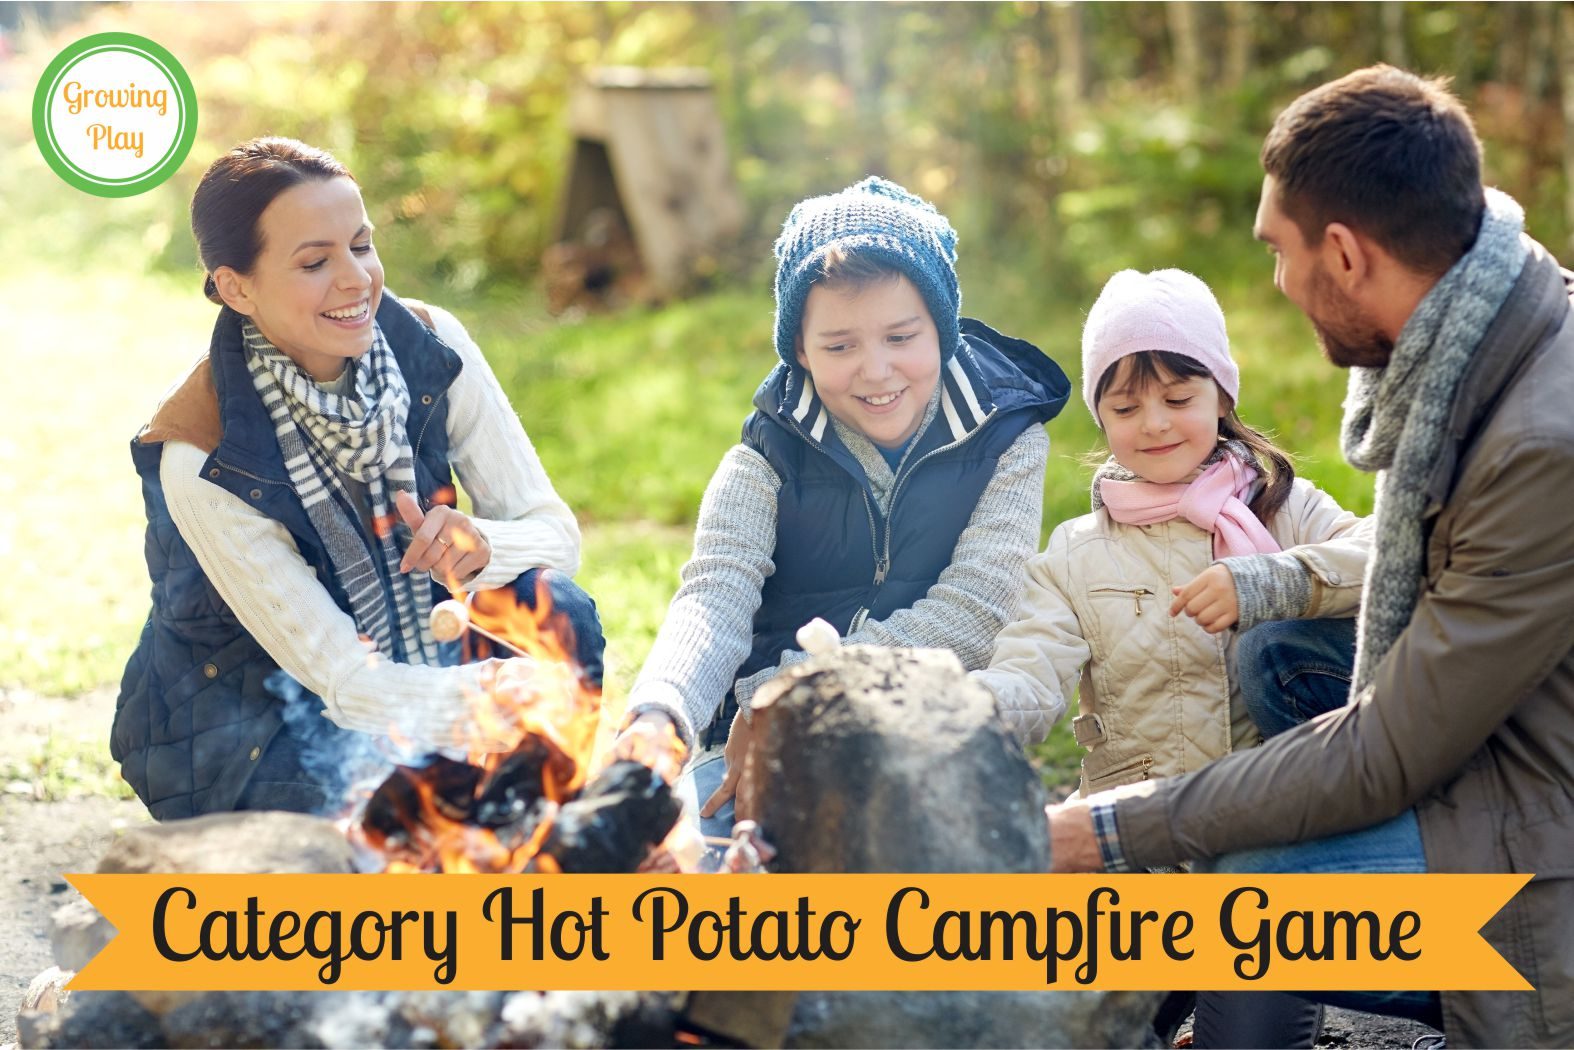 Growing Play Category Hot Potato Campfire Game